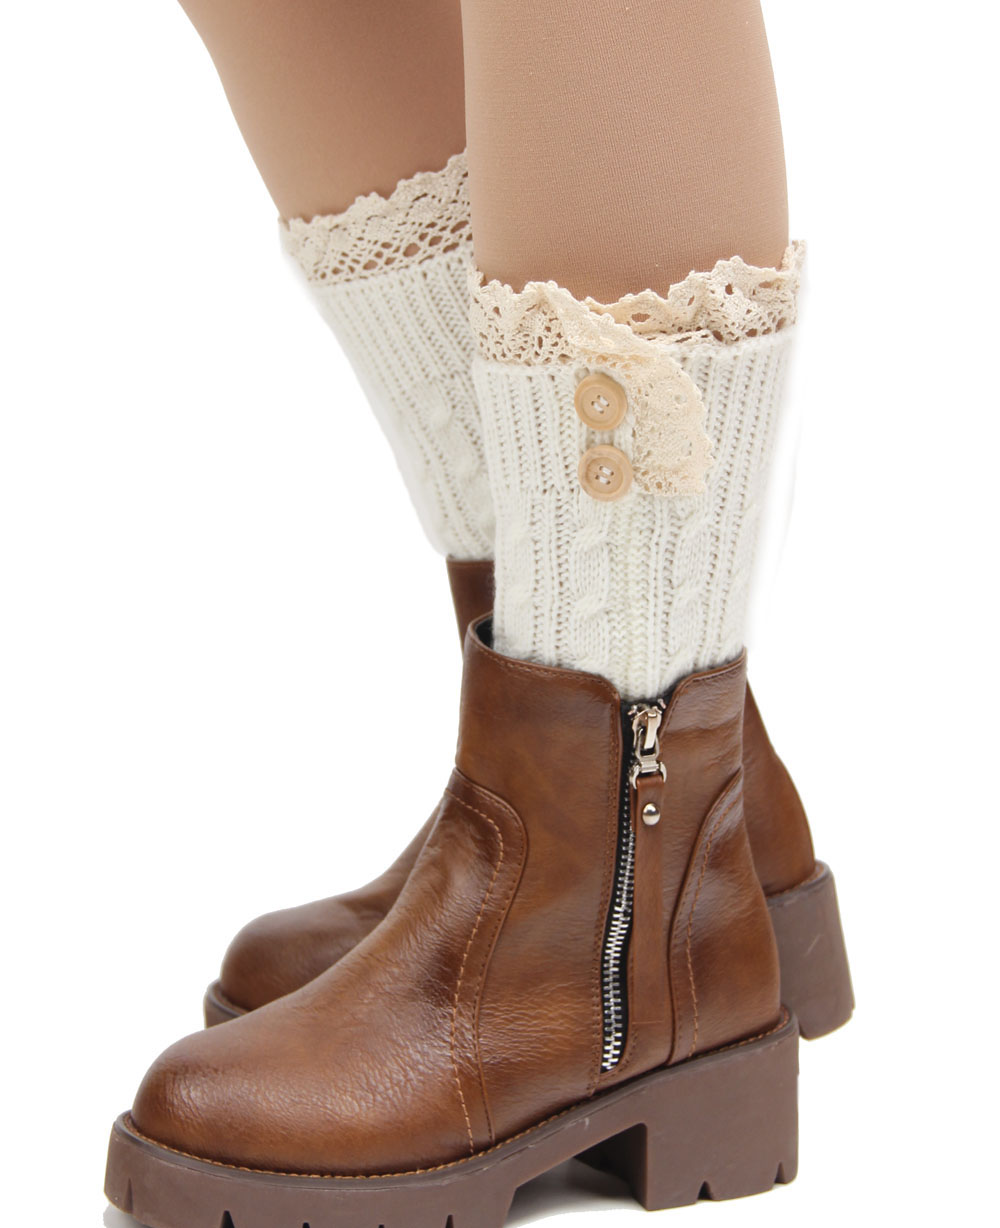 Shop Boot Socks and more women's boots socks at No nonsense. Versatile, comfortable, and stylish. No nonsense socks pair perfectly with any style boot.